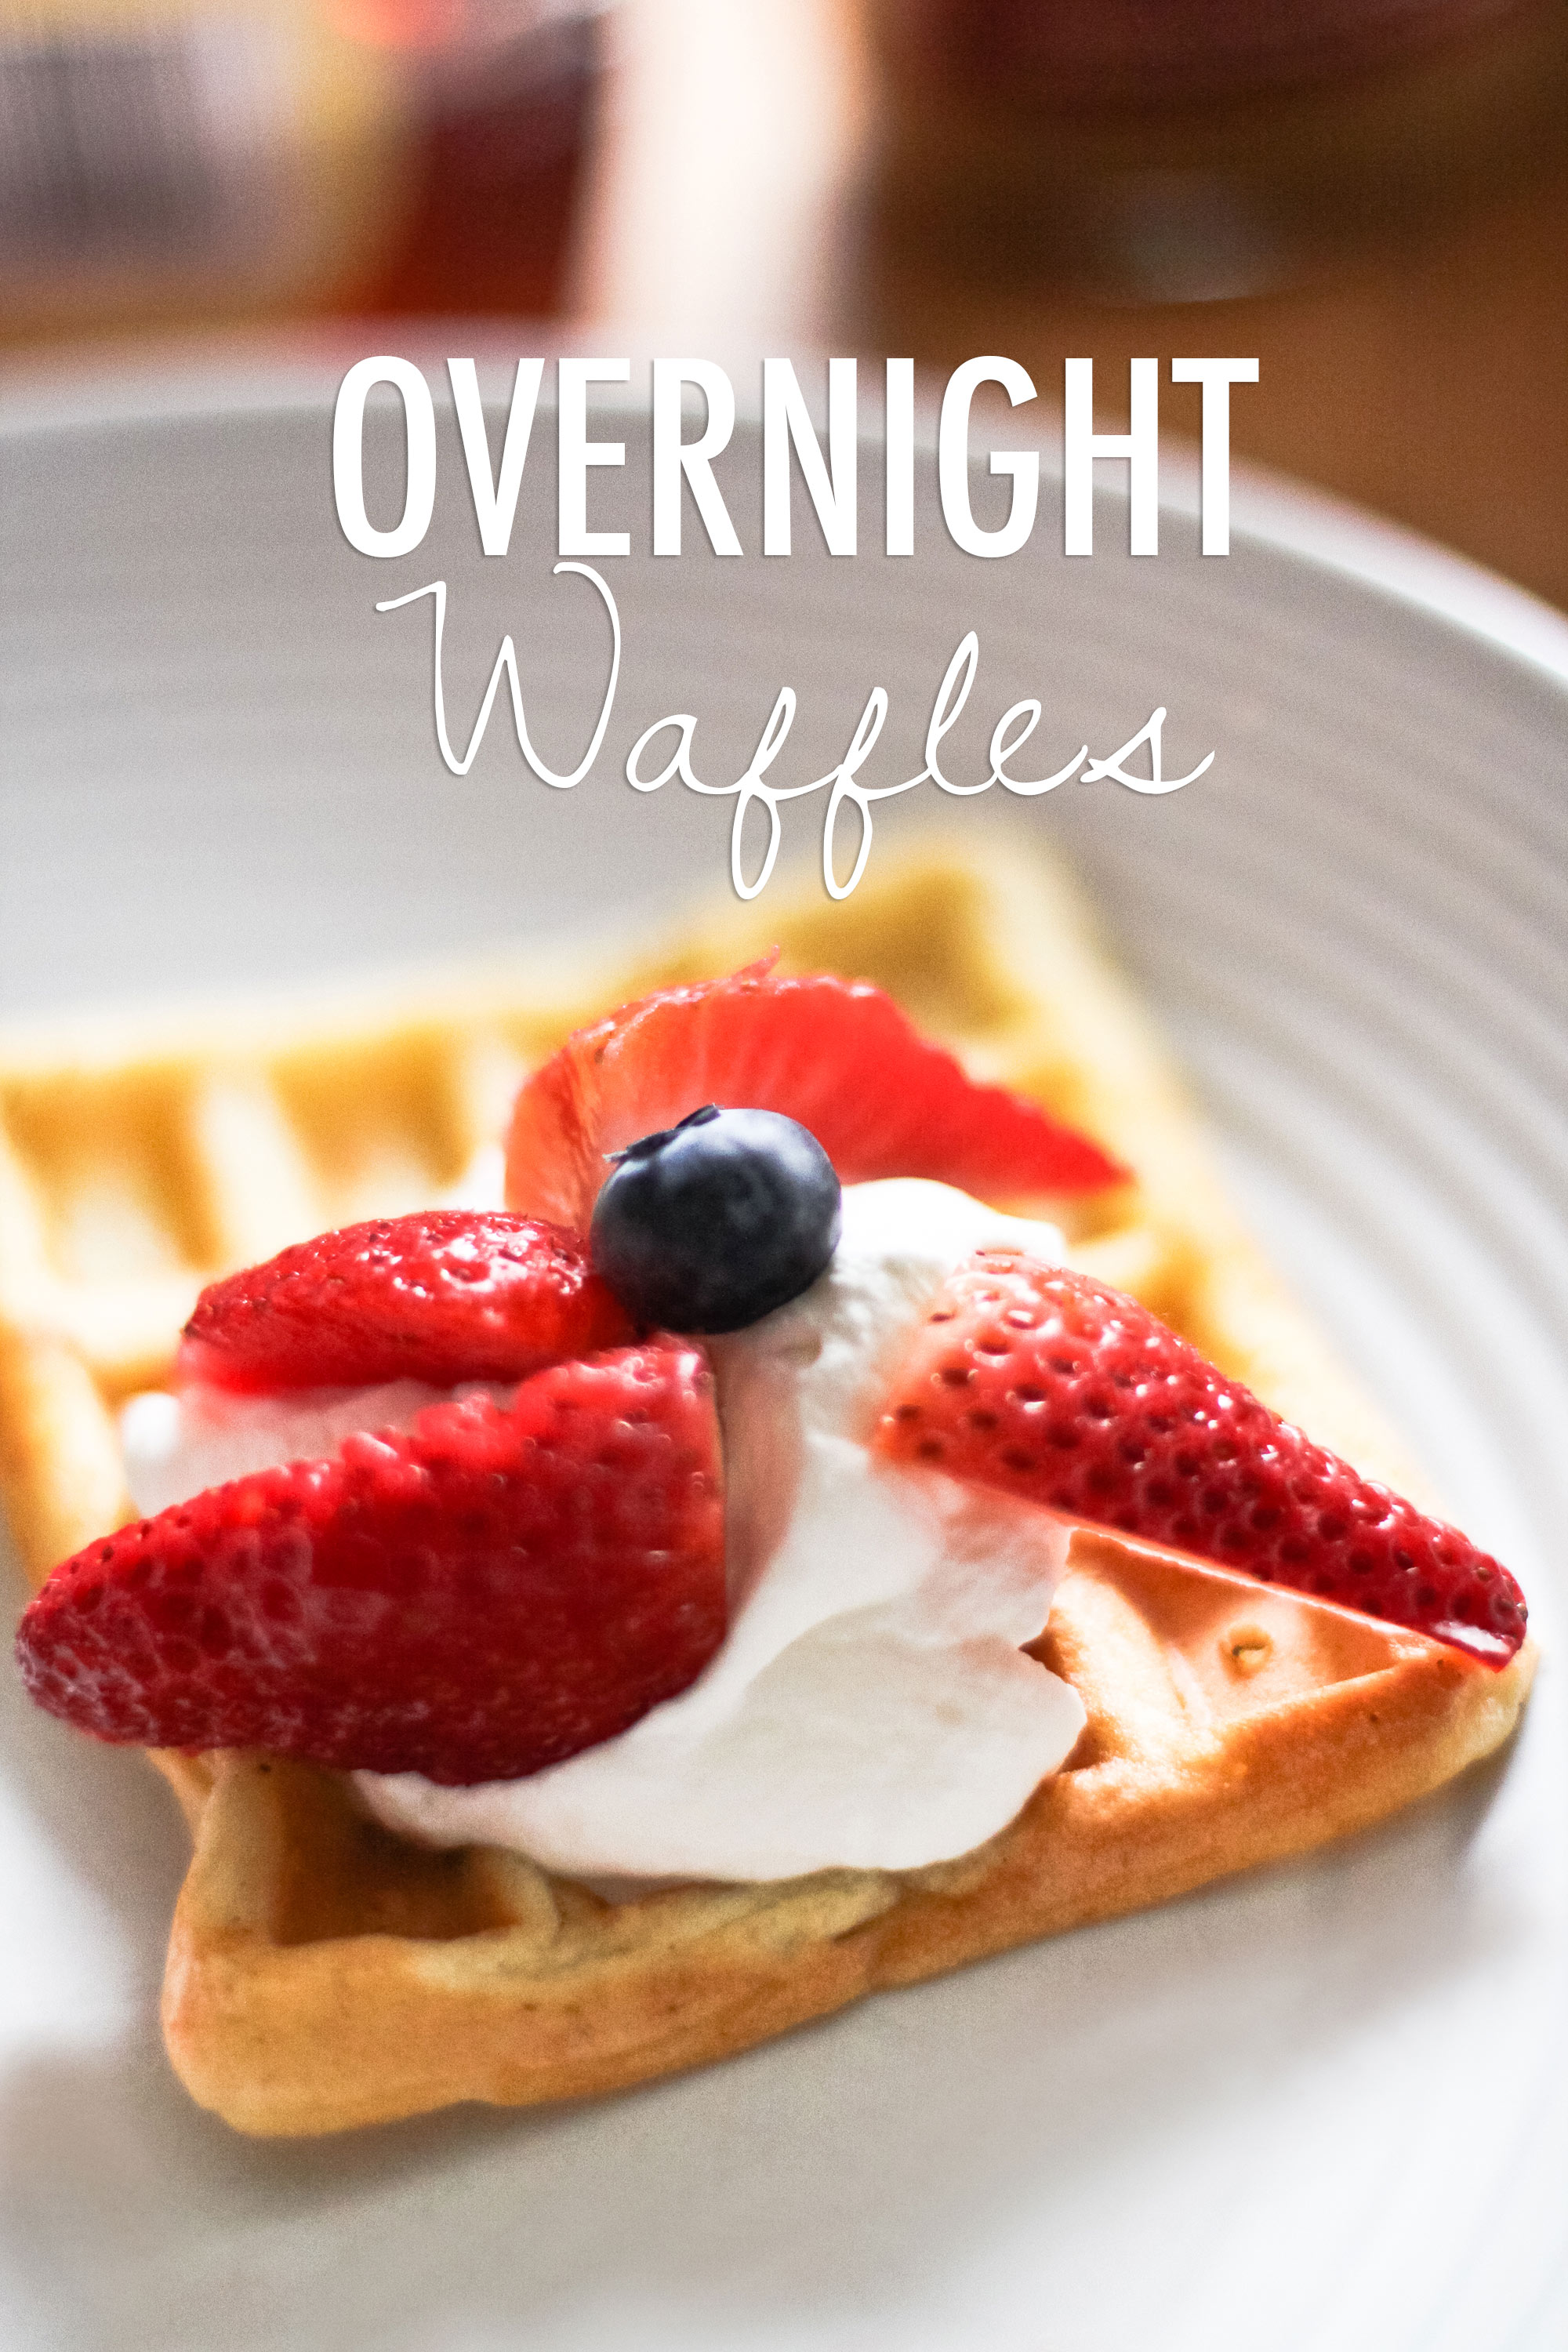 overnight waffles from ssheart.com